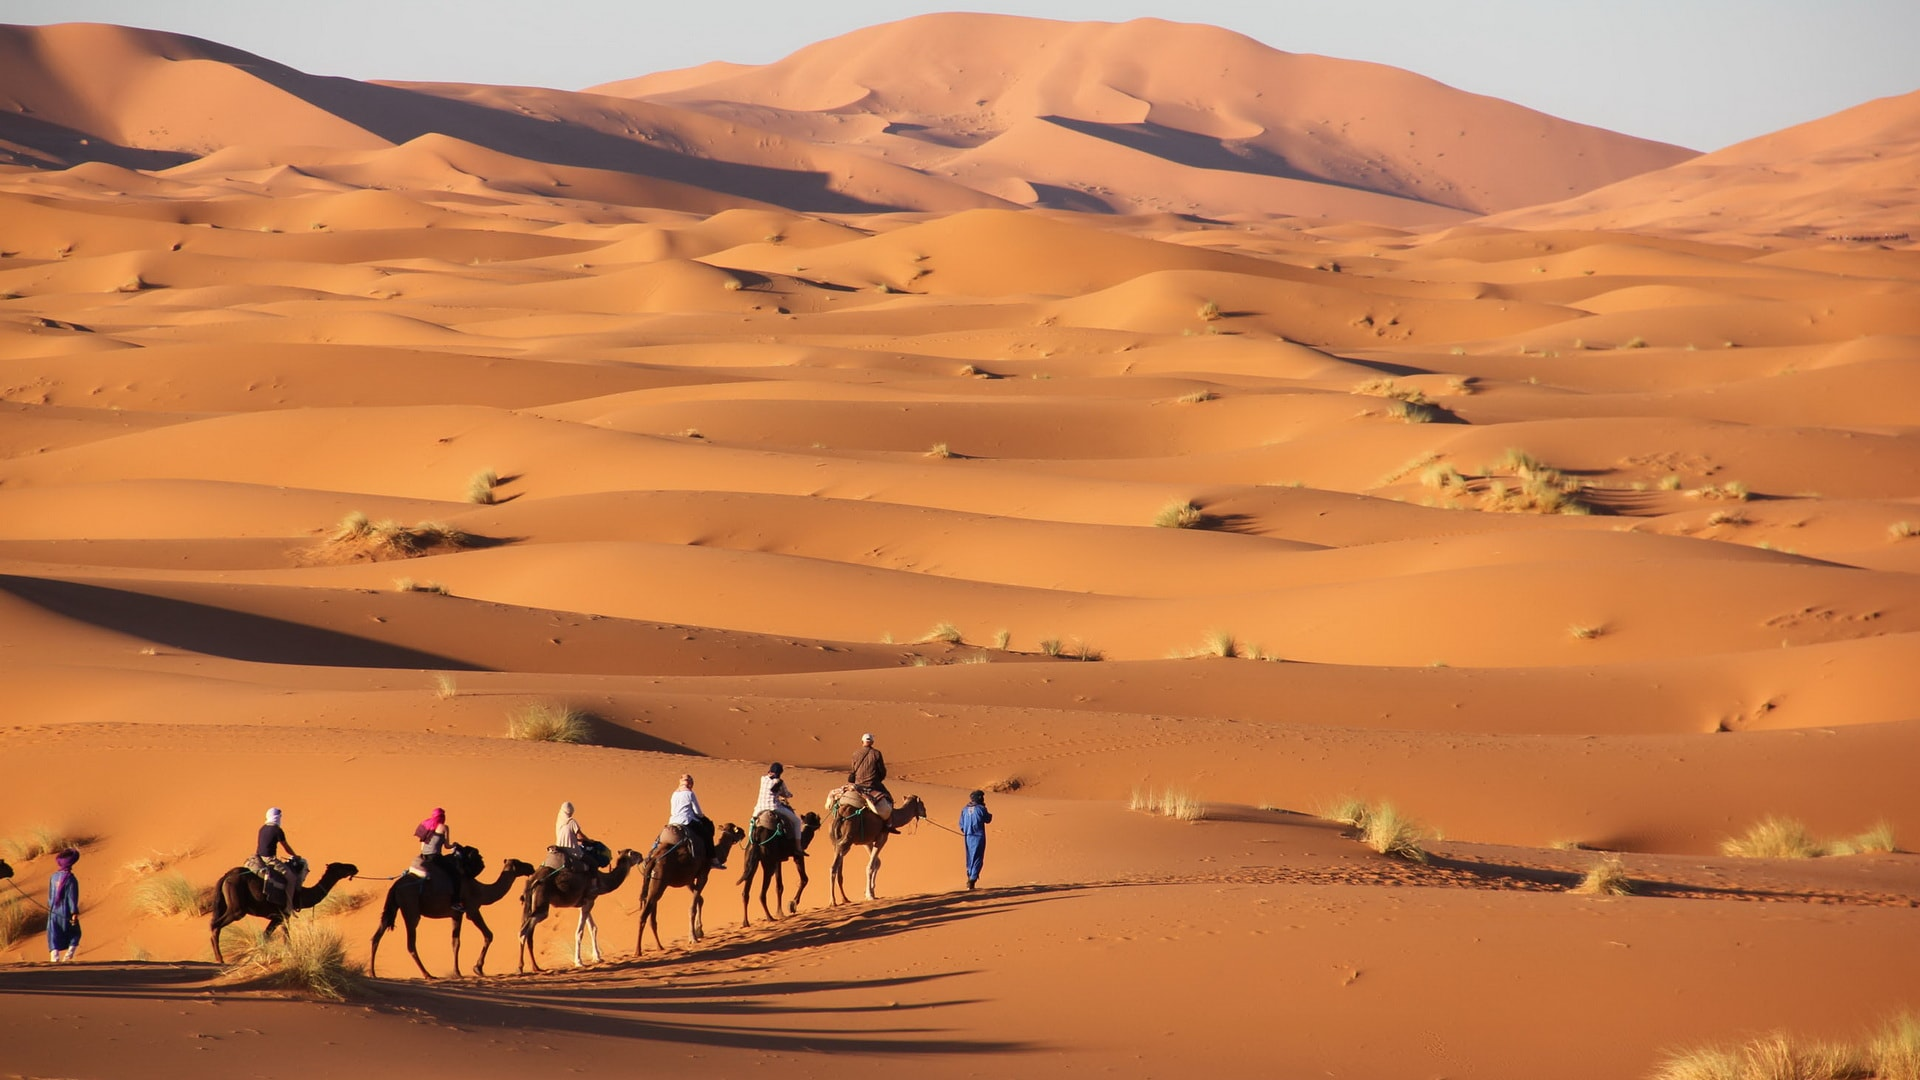 pathfinders treks - morocco sahara desert tour 4 days 3 nights